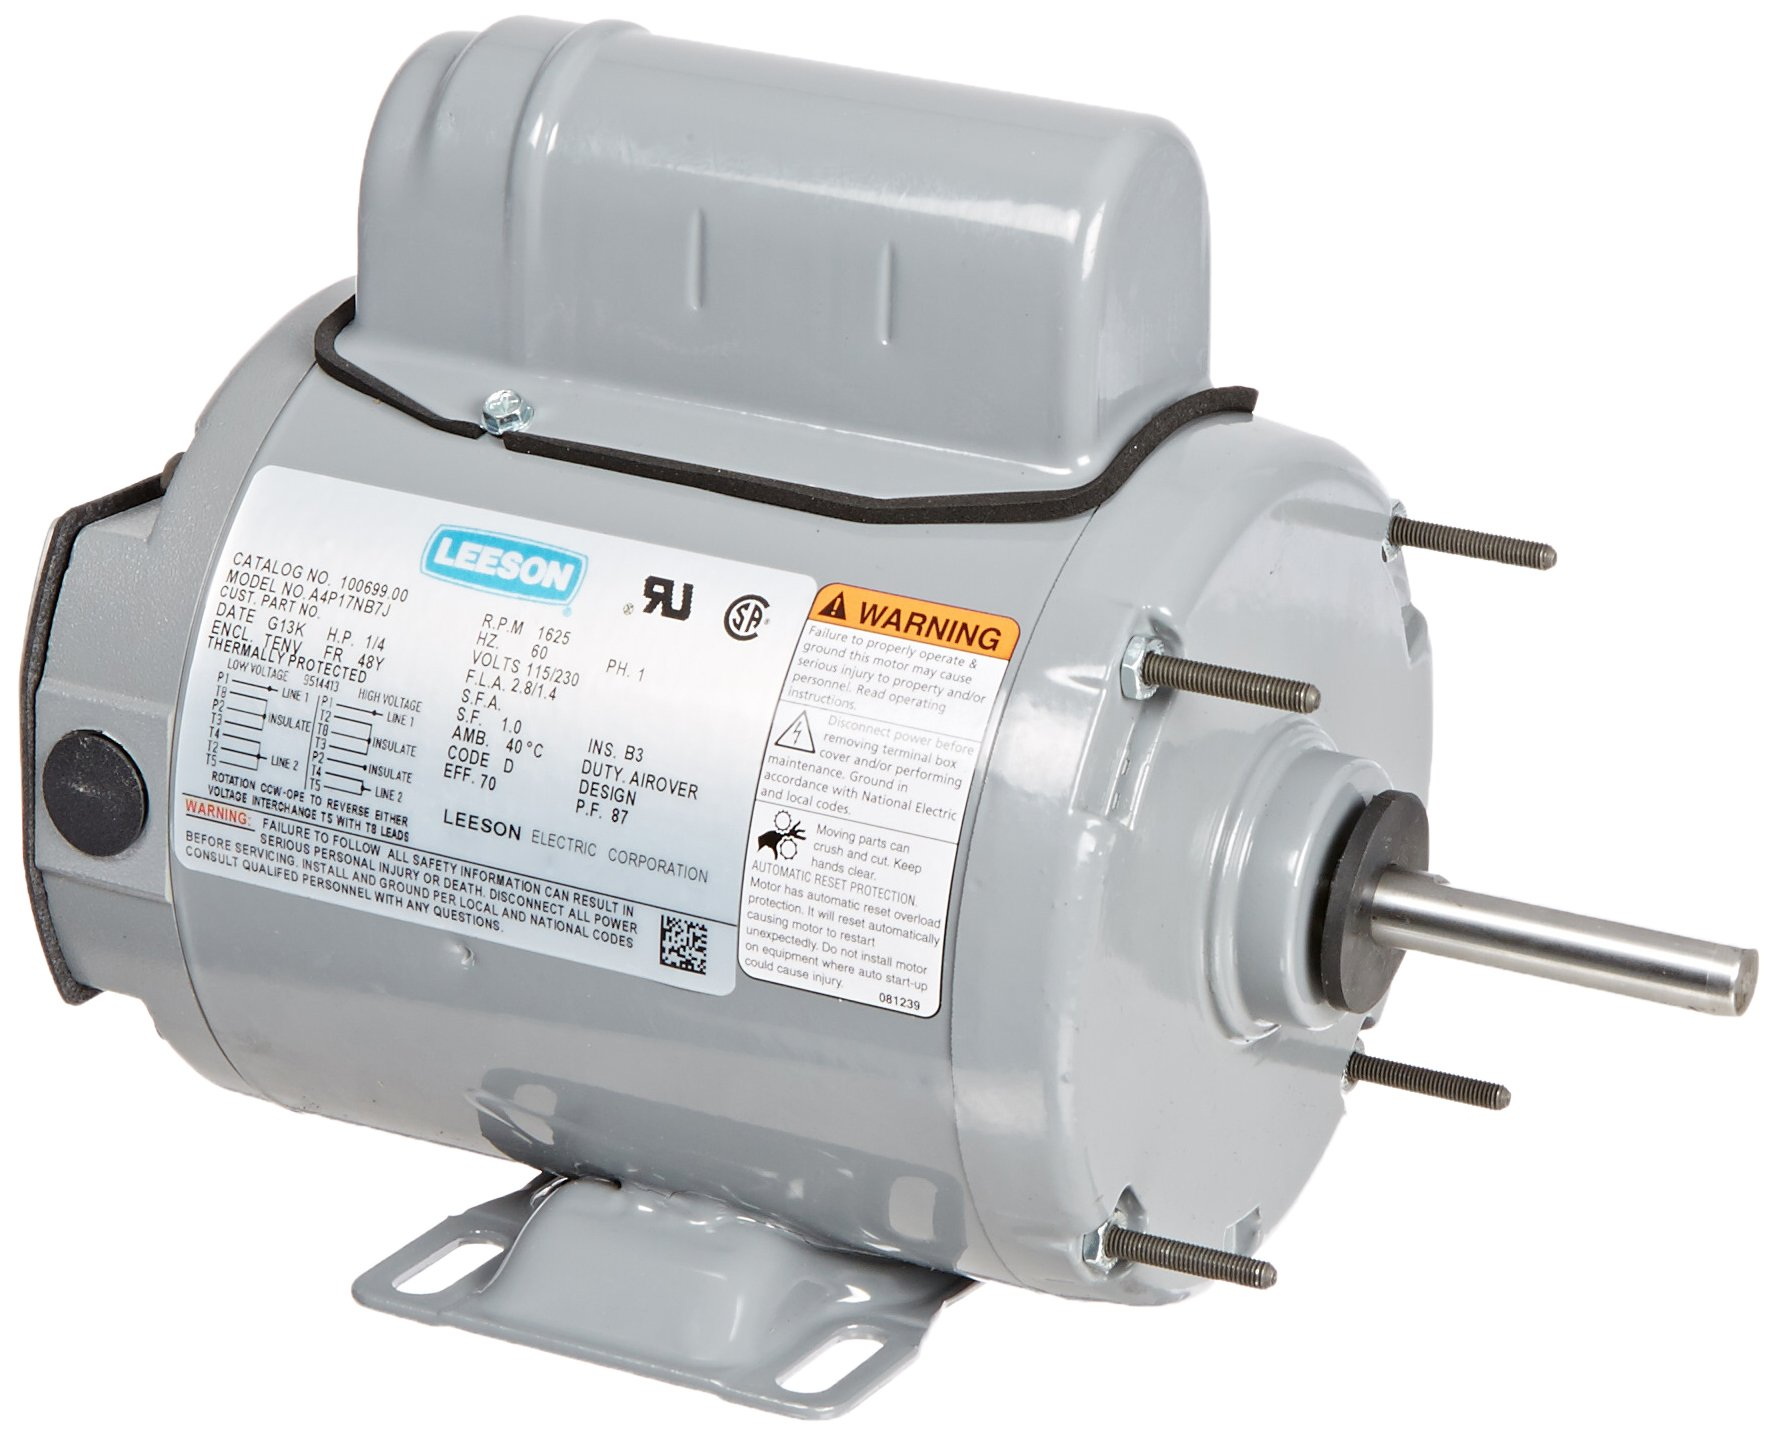 Leeson 100699.00 Agricultural Fan Duty Motor, 1 Phase, 48Y Frame, Rigid Mounting, 1/4HP, 1625 RPM, 115/230V Voltage, 60Hz Fequency